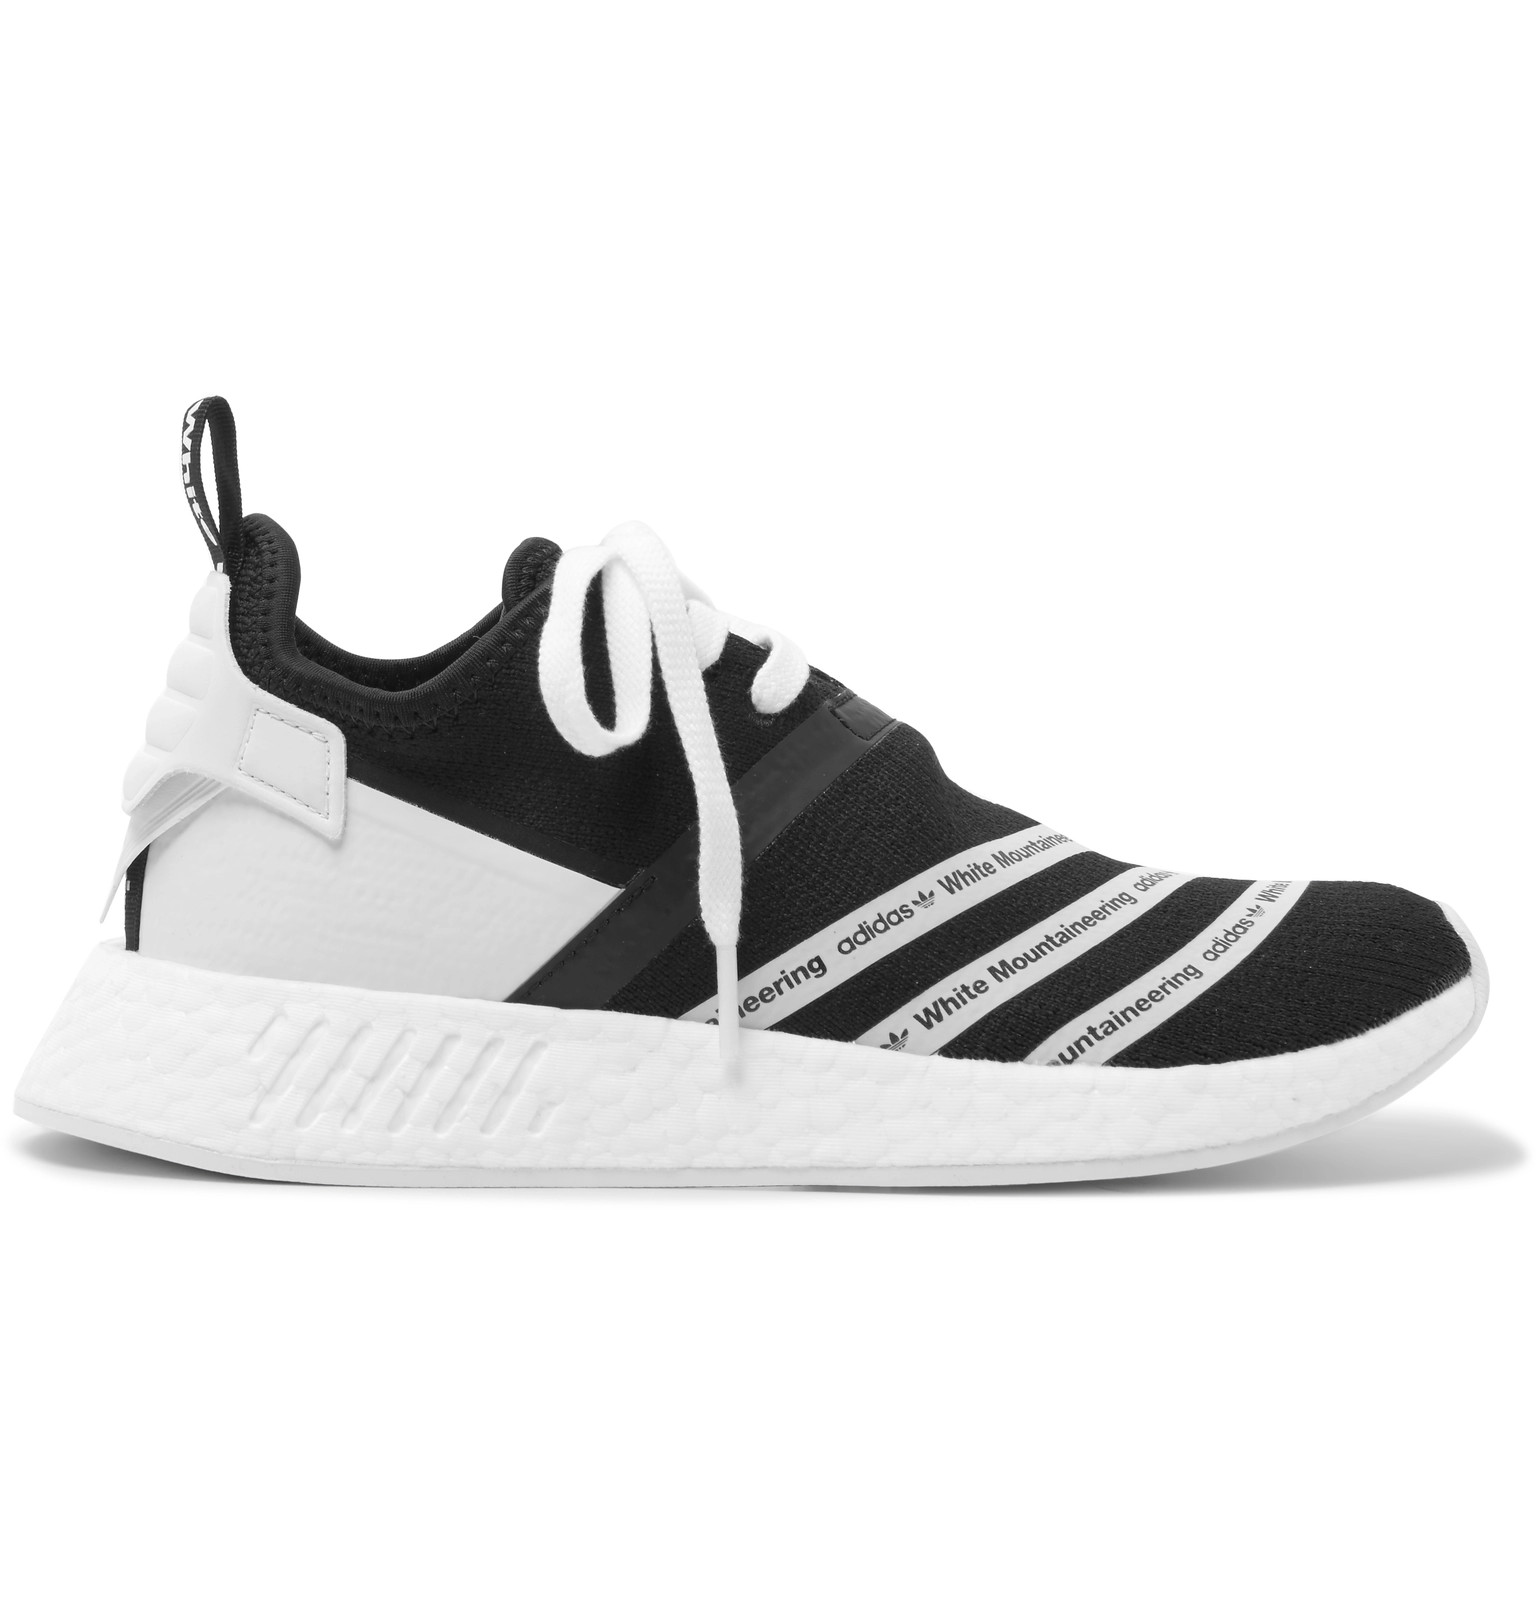 84e00bc1852ac Adidas Originals White NMD R2 Primeknit trainers Browns Fashion